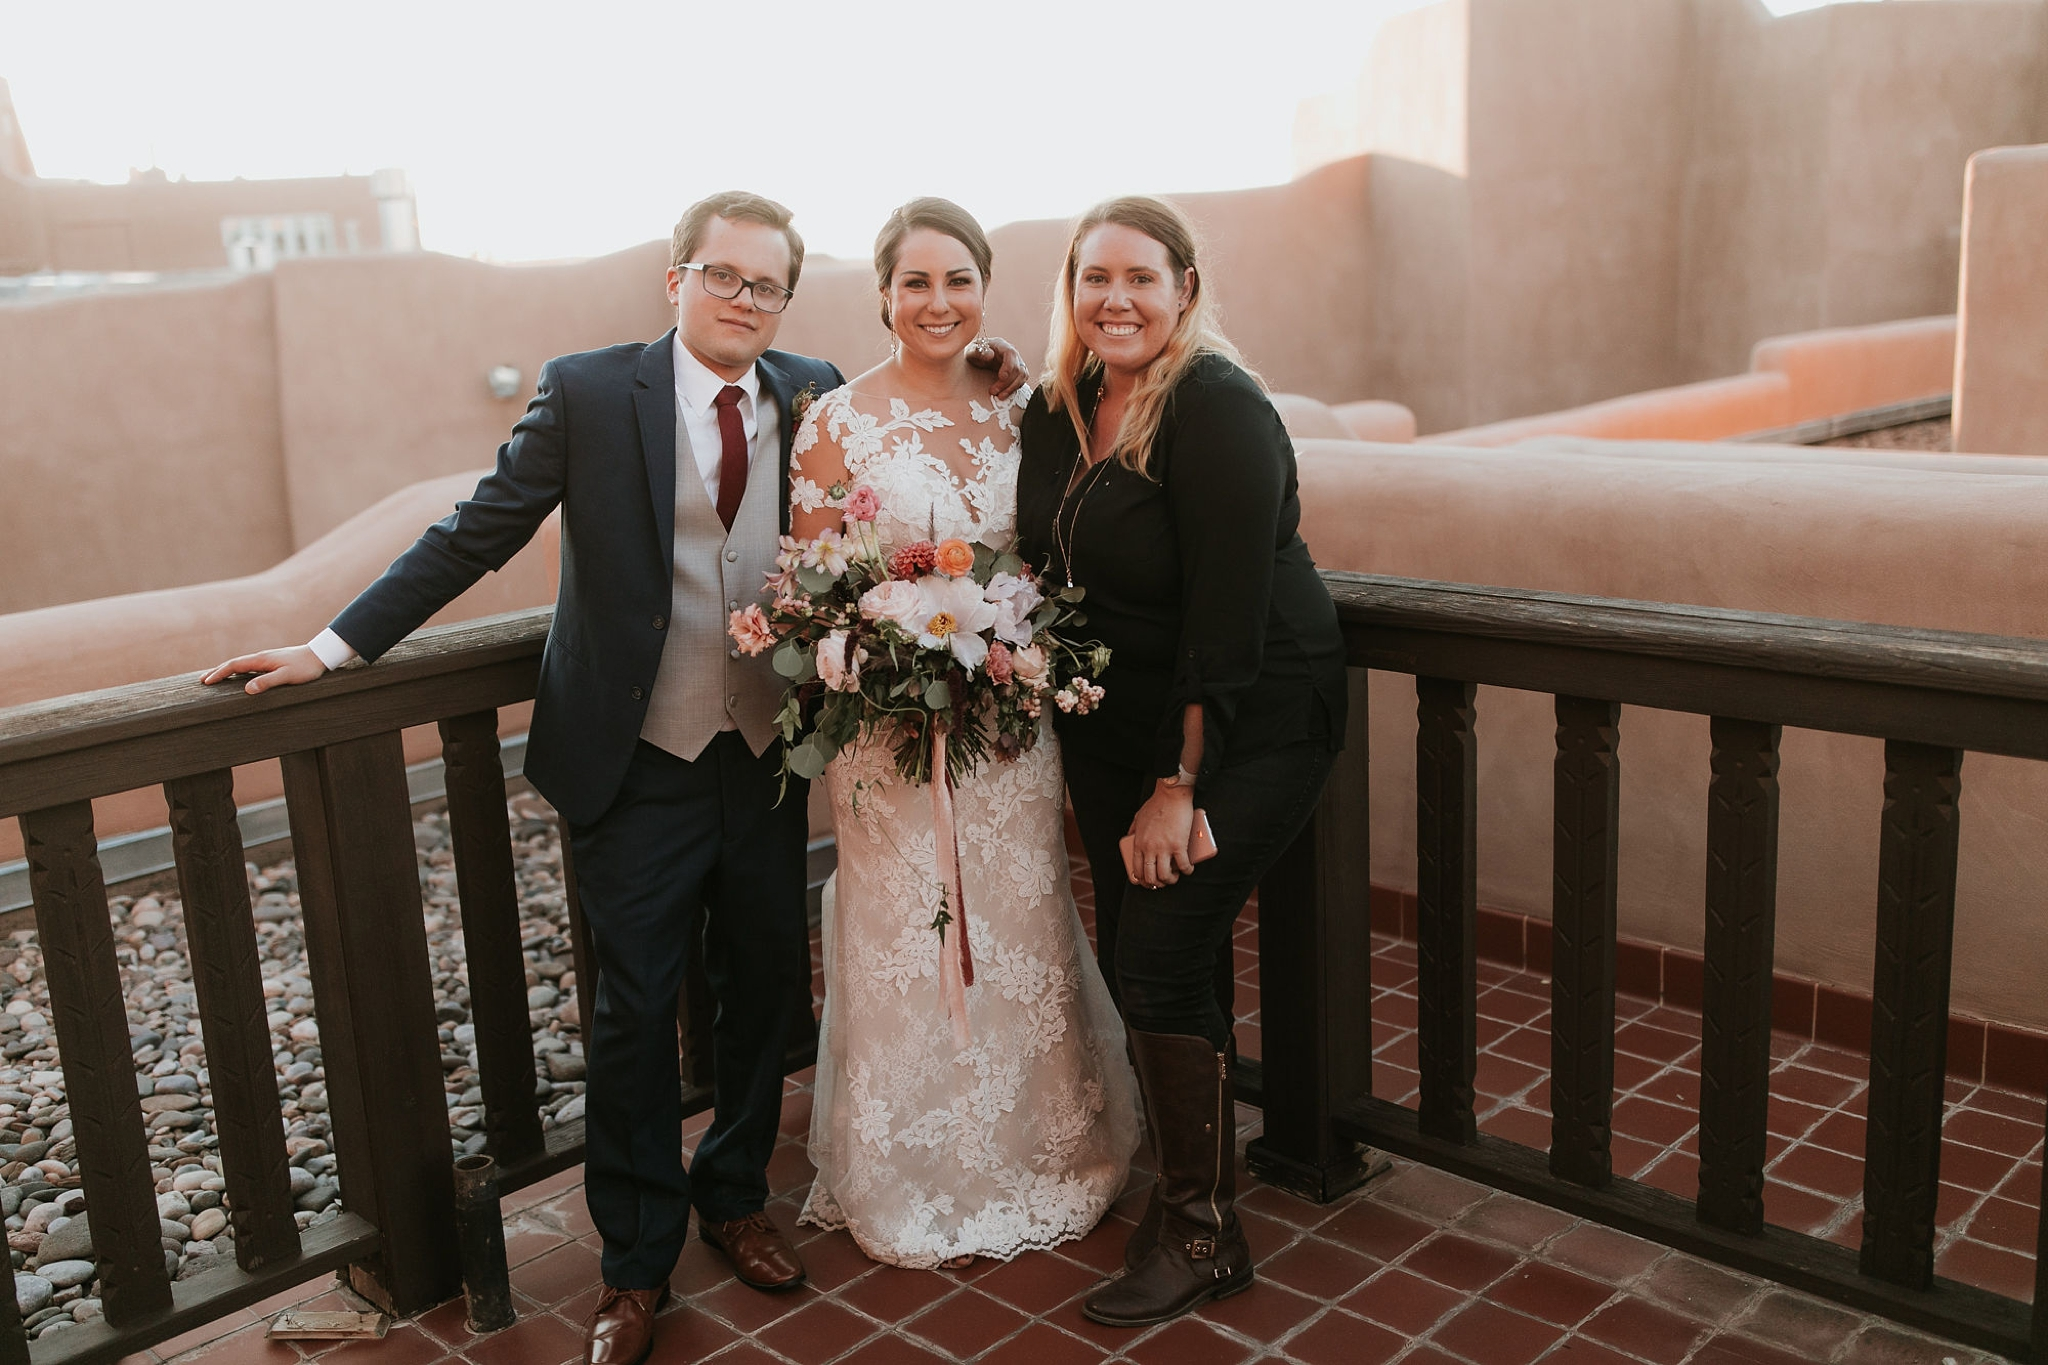 Alicia+lucia+photography+-+albuquerque+wedding+photographer+-+santa+fe+wedding+photography+-+new+mexico+wedding+photographer+-+new+mexico+wedding+-+wedding+planner+-+just+lovely+weddings+-+new+mexico+wedding+planner_0100.jpg